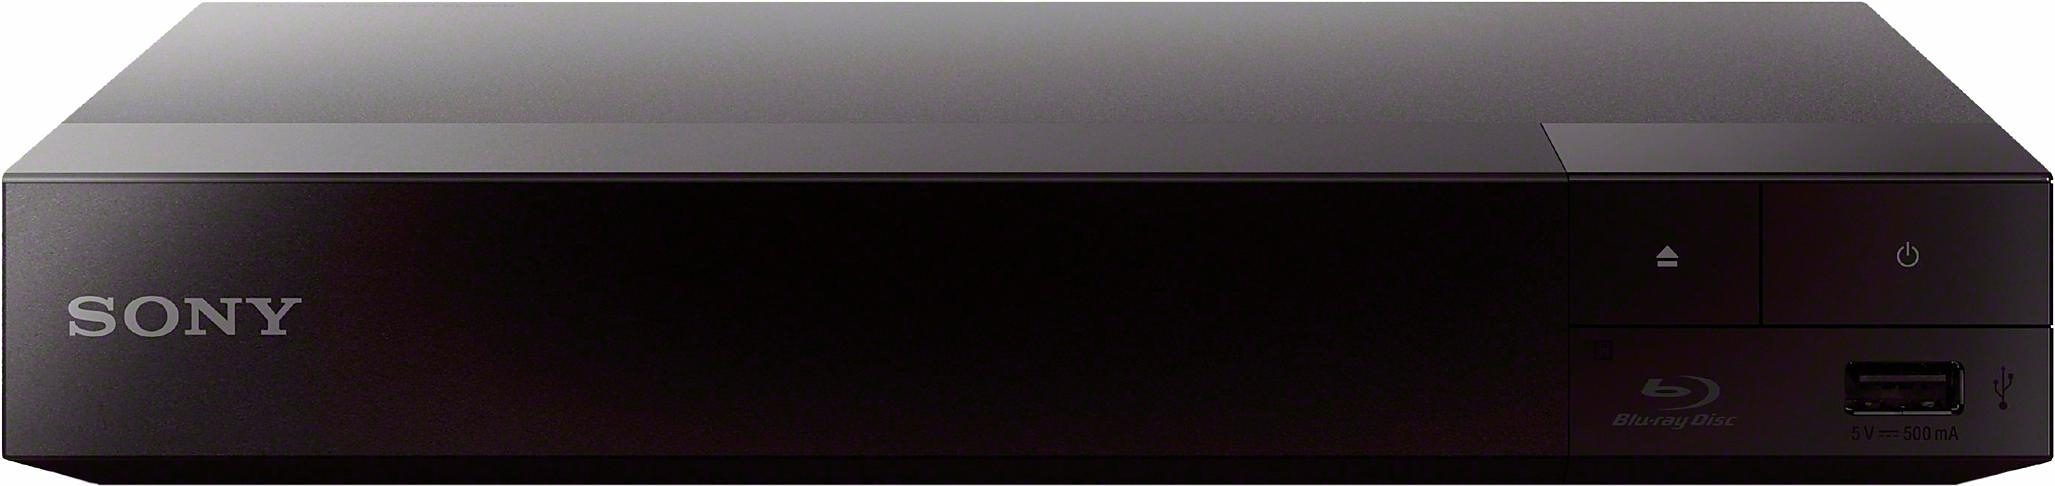 sony bdp s3700 blu ray player miracast wi fi alliance. Black Bedroom Furniture Sets. Home Design Ideas